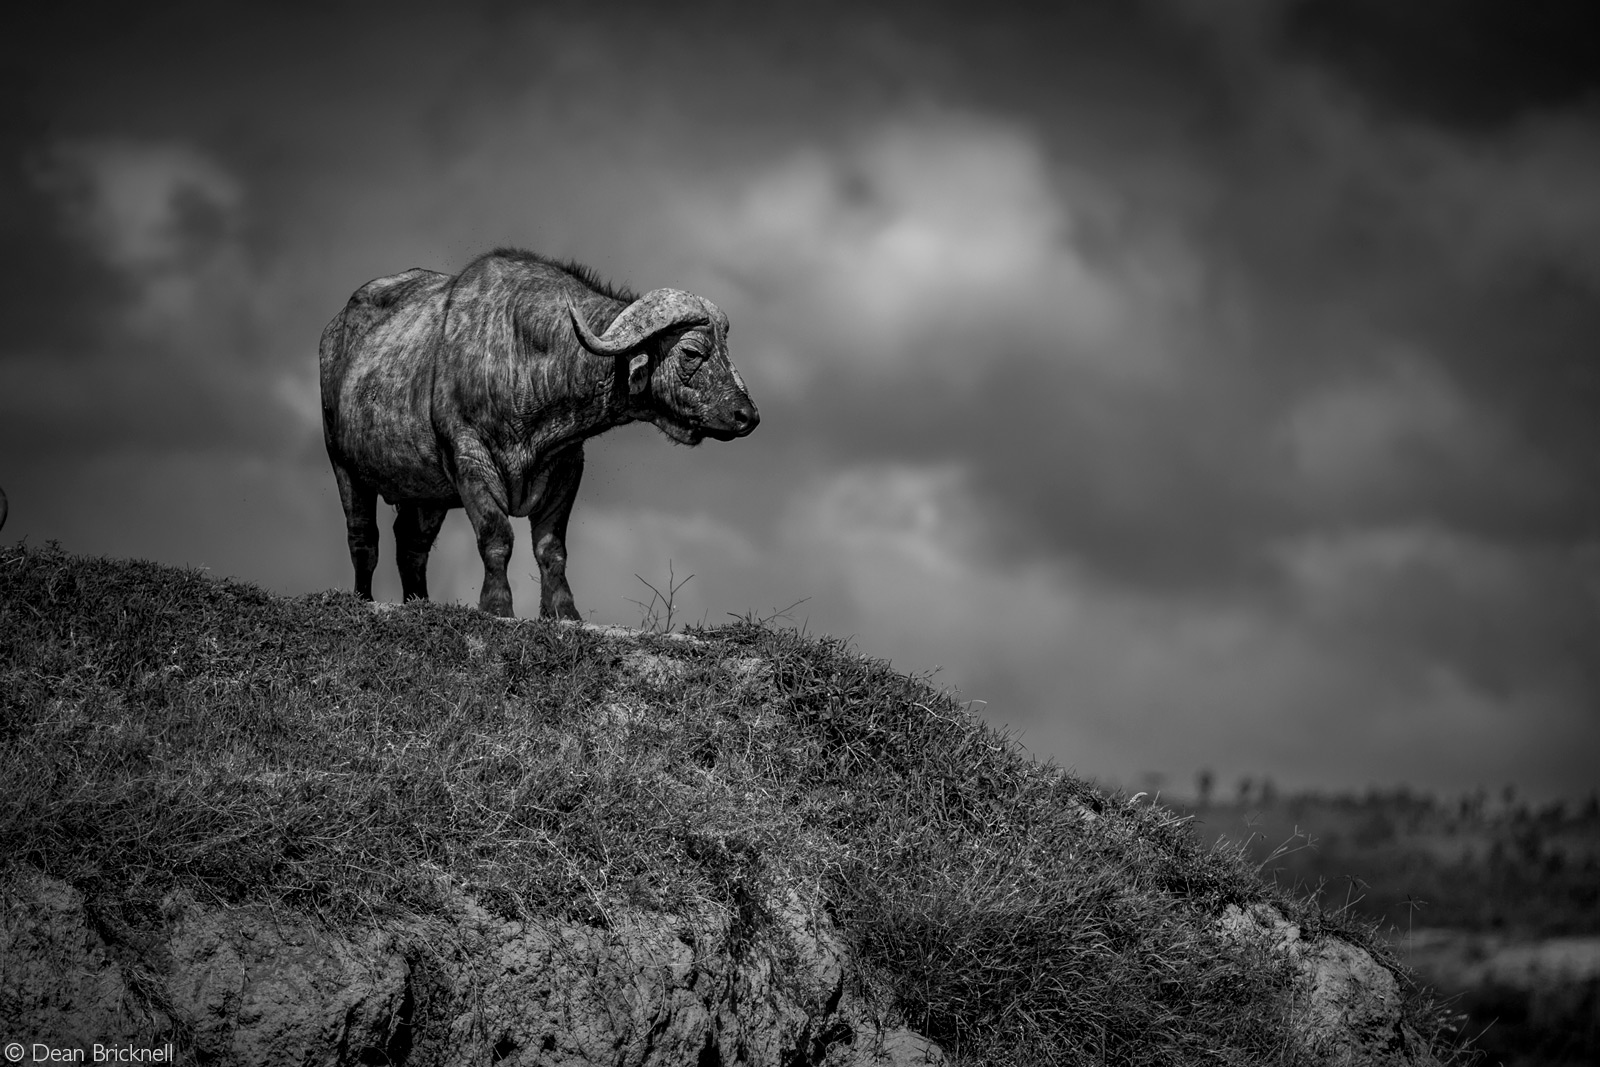 Cape buffalo on the look out. Lake Nakuru National Park, Kenya © Dean Bricknell